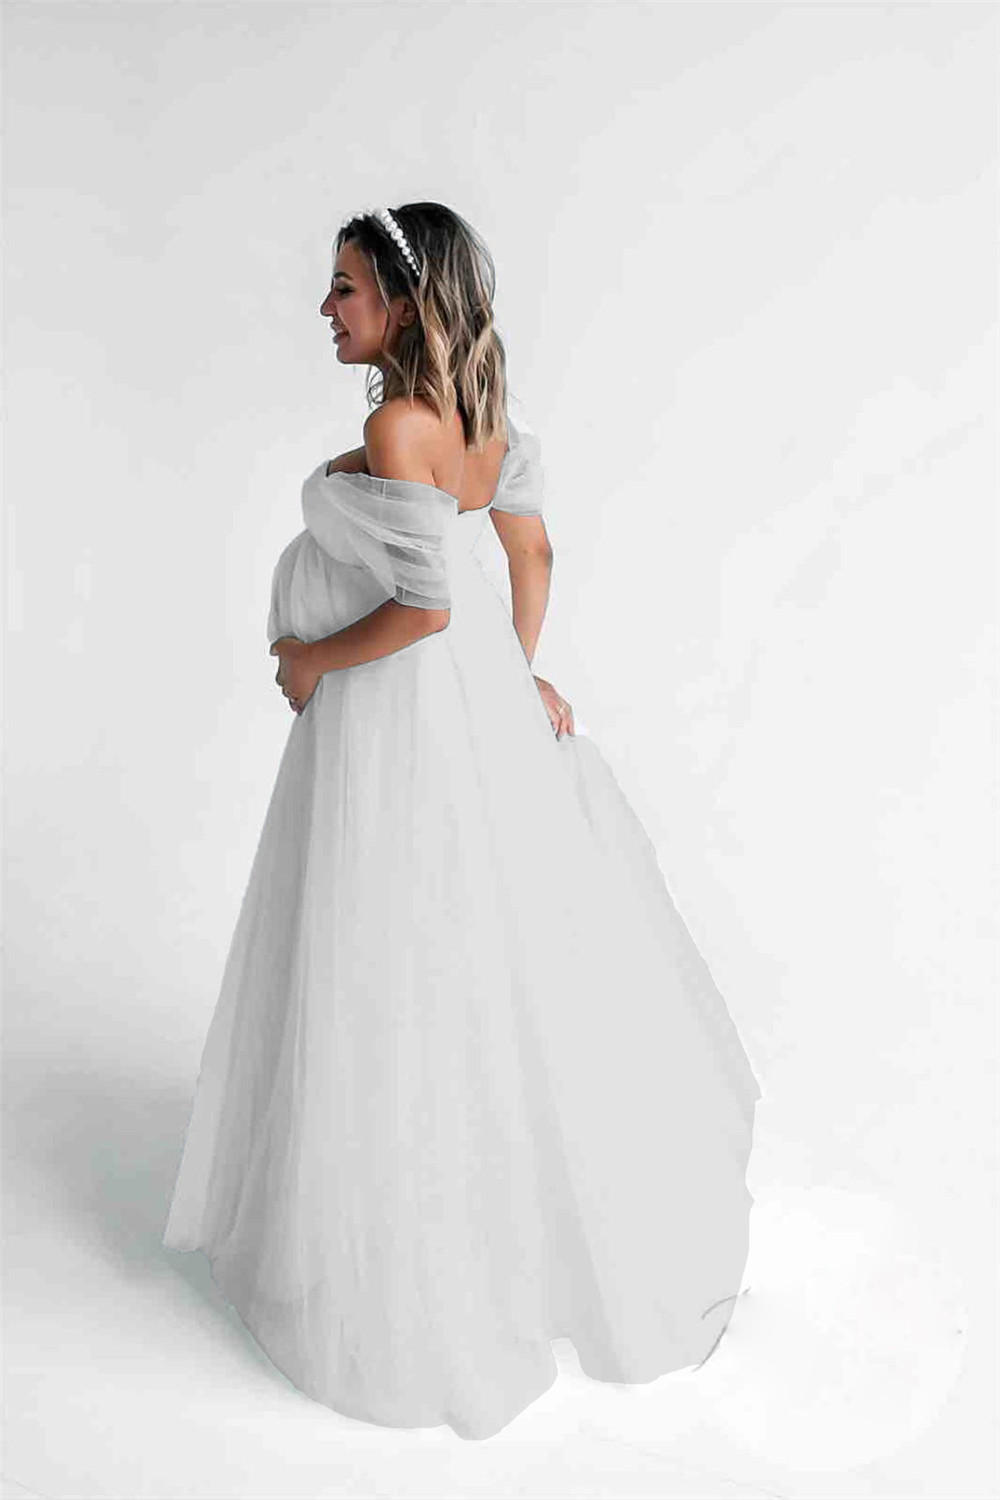 Shoulderless Sexy Maternity Dress Photo Shoot Long Pregnancy Dresses Photography Props Lace Chiffon Maxi Gown For Pregnant Women (3)